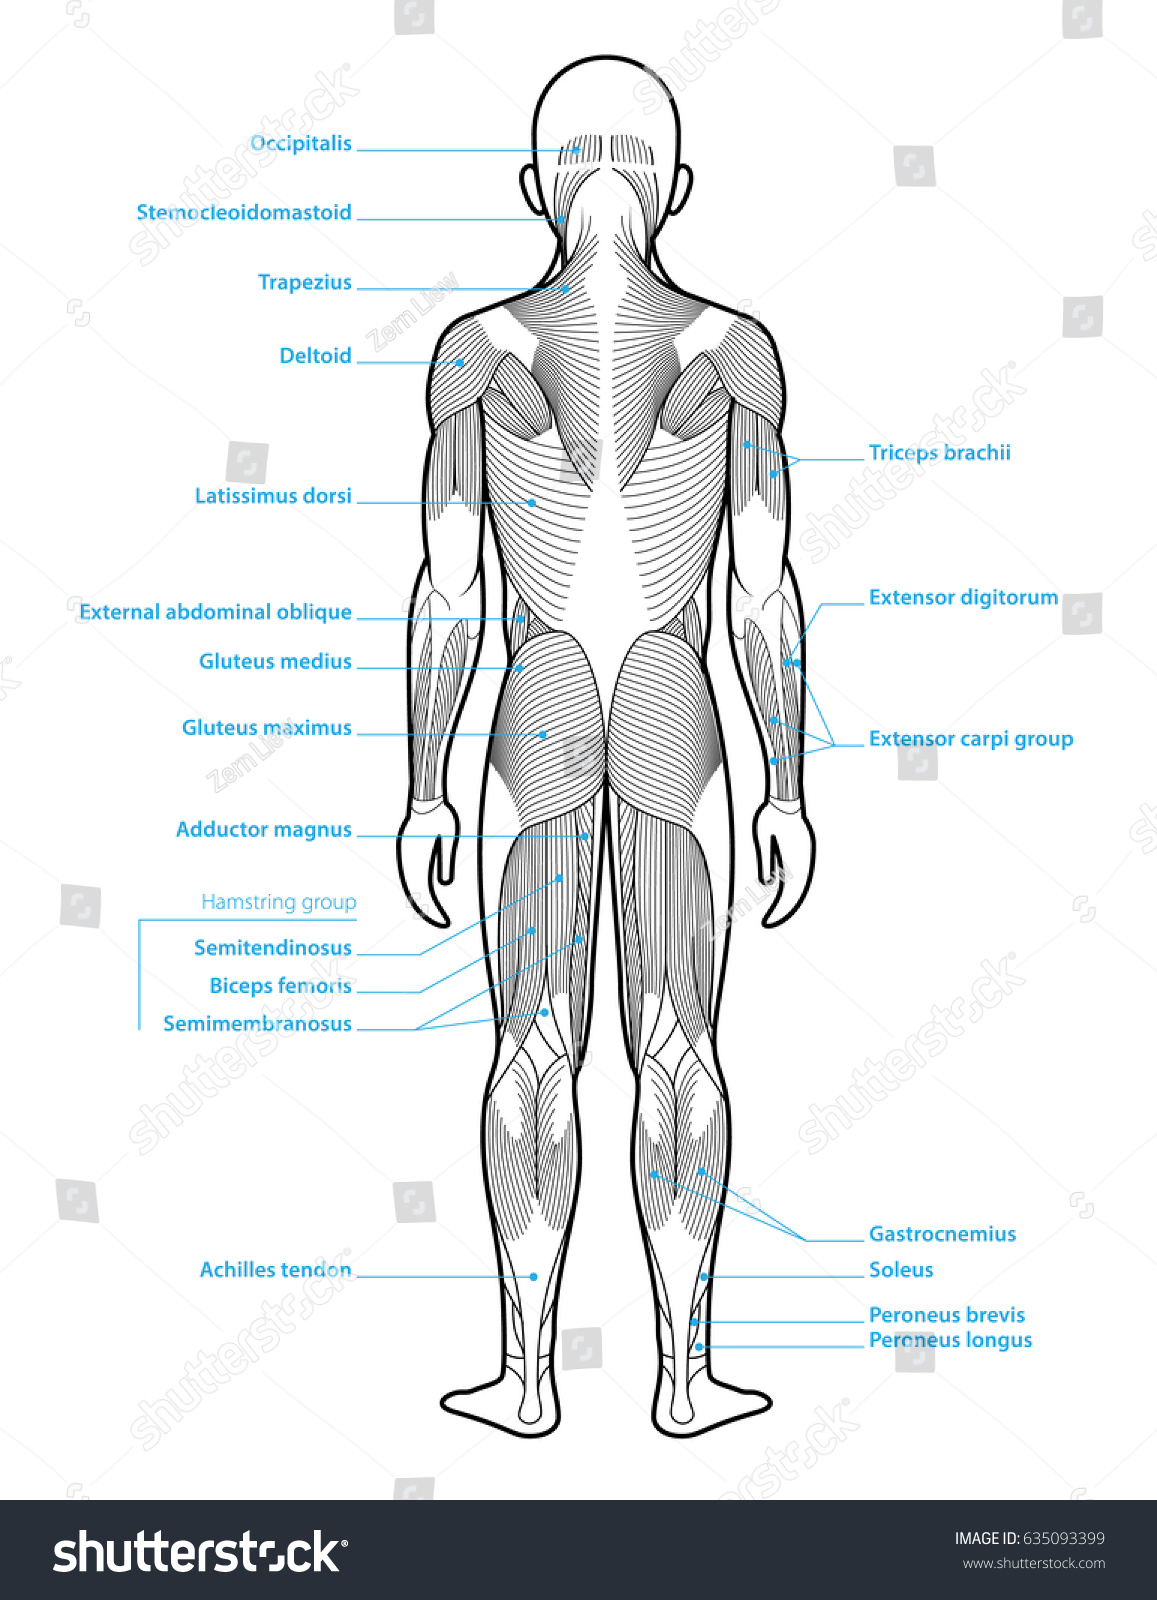 hight resolution of stylized anatomy diagram showing major muscle groups shown from the back posterior view with labels